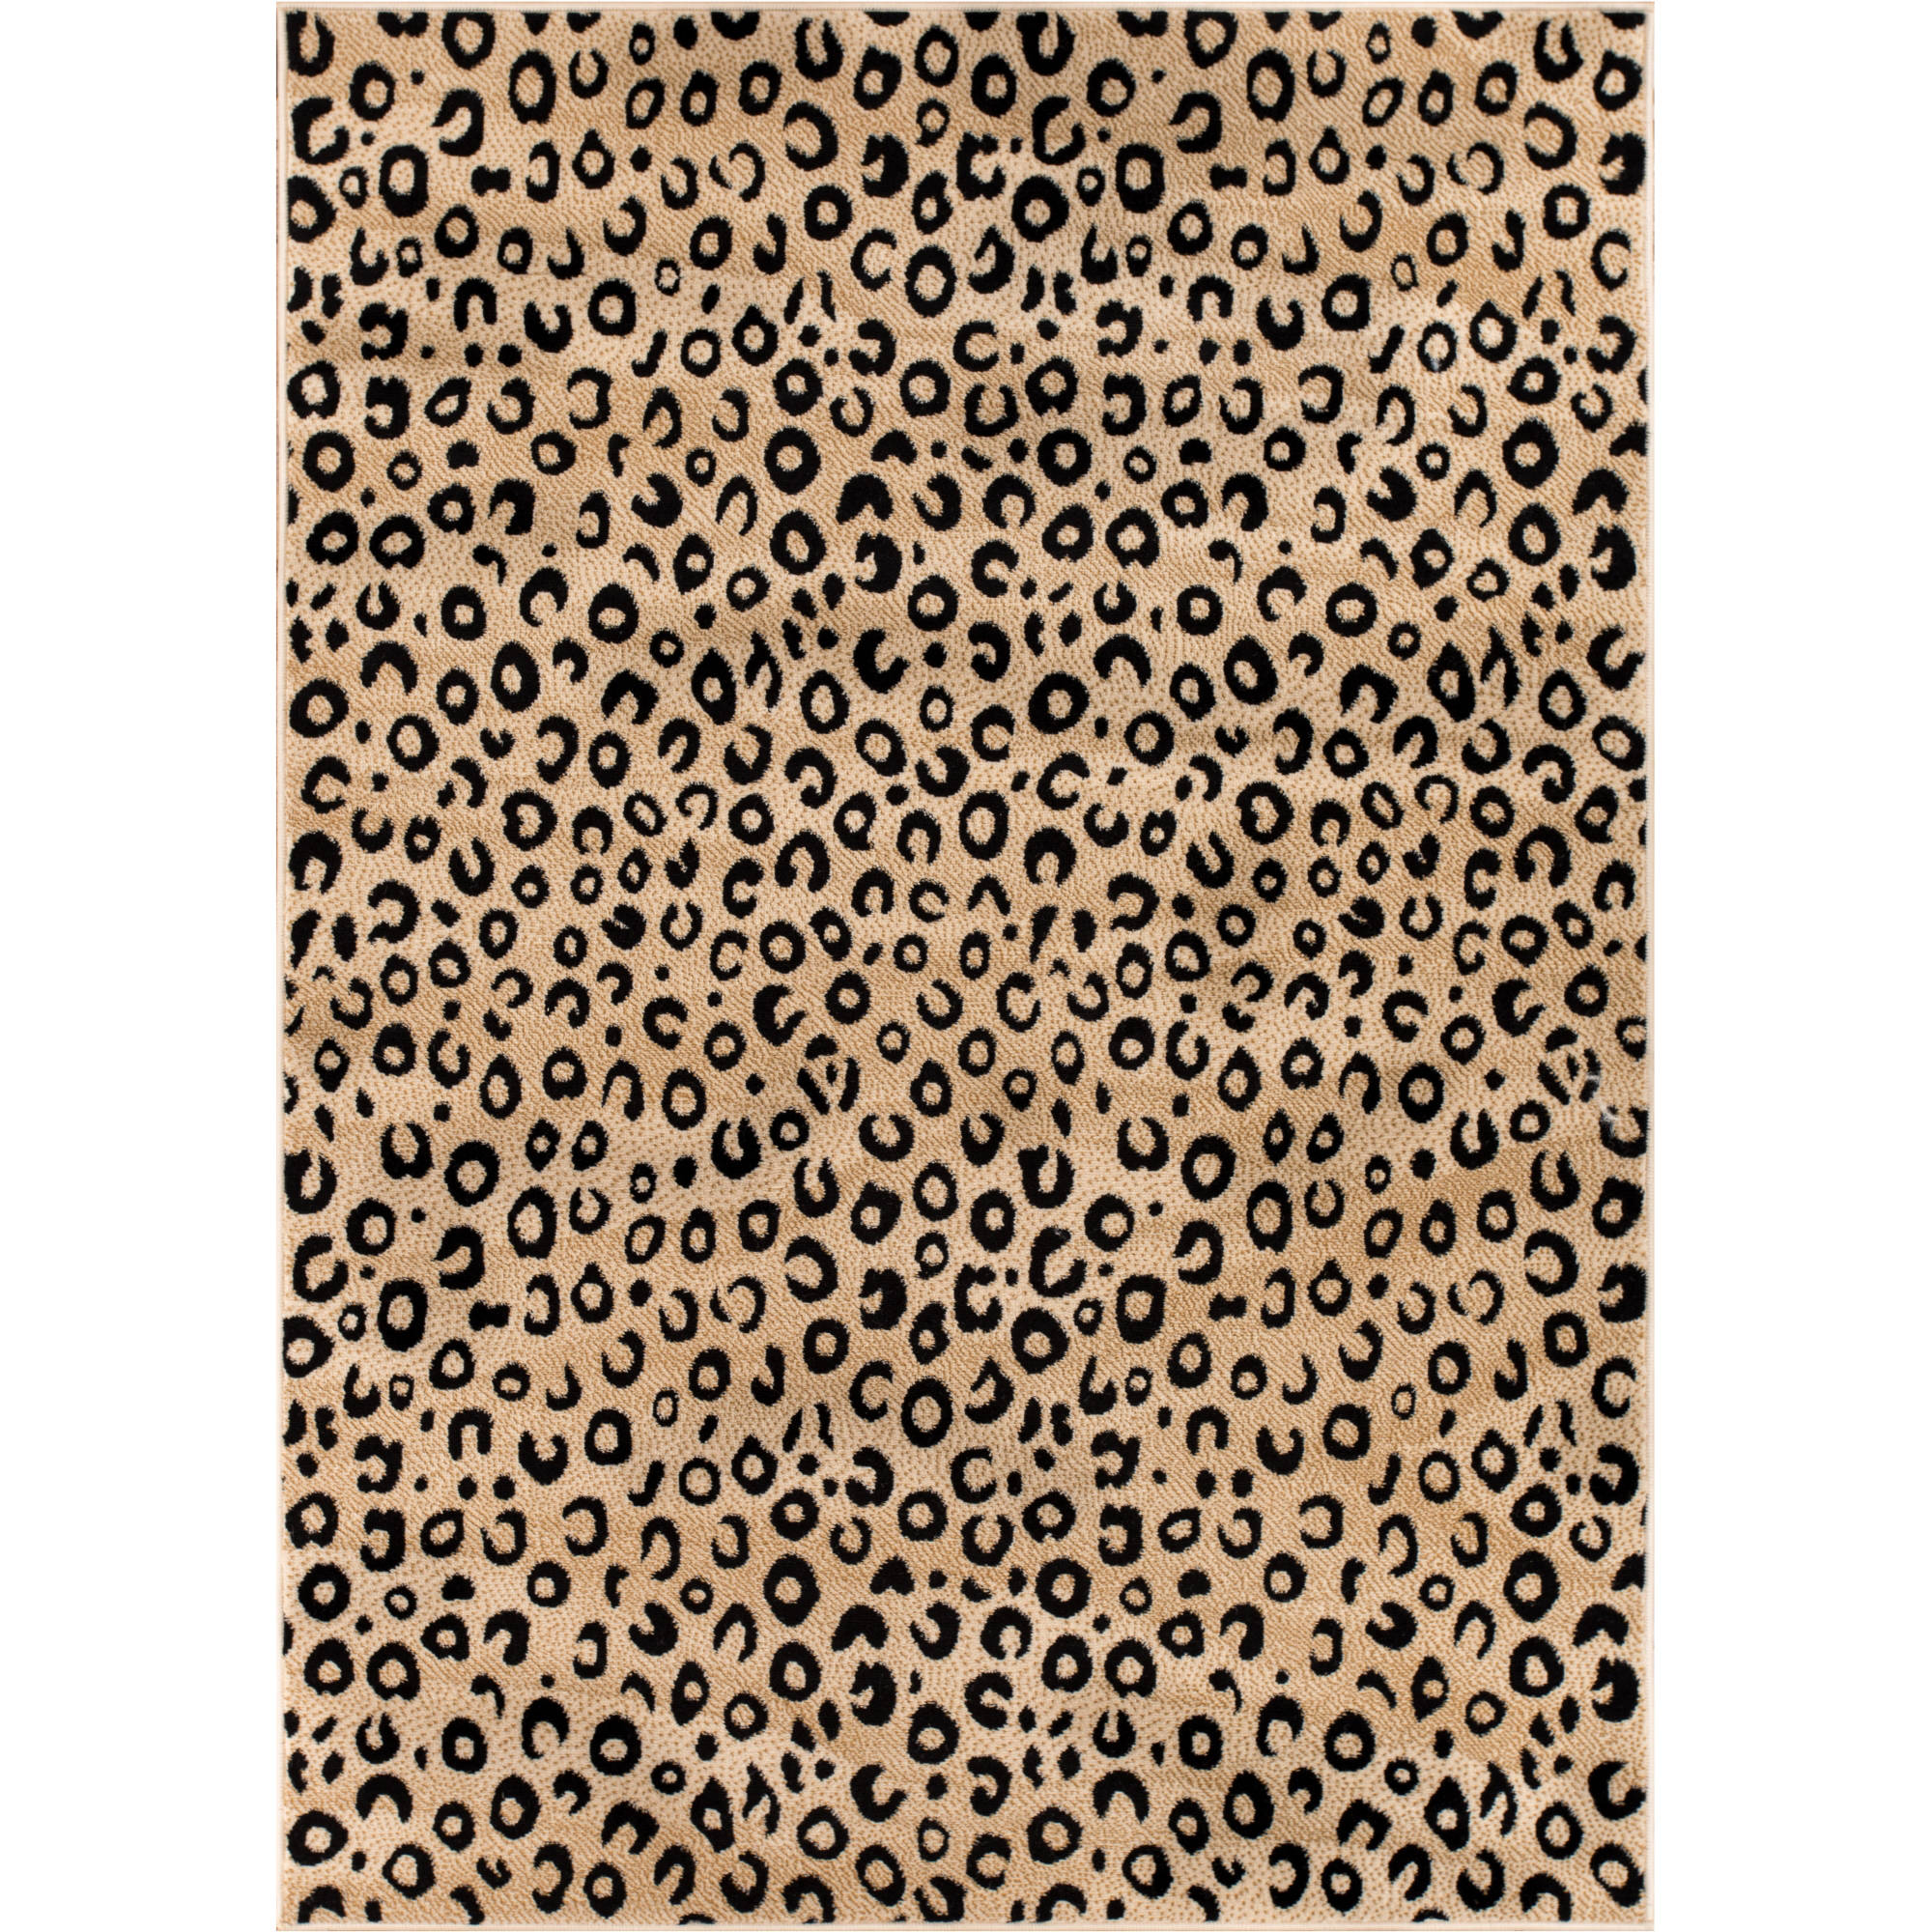 Well Woven Dulcet Leopard Animal Print Area Rug, Black